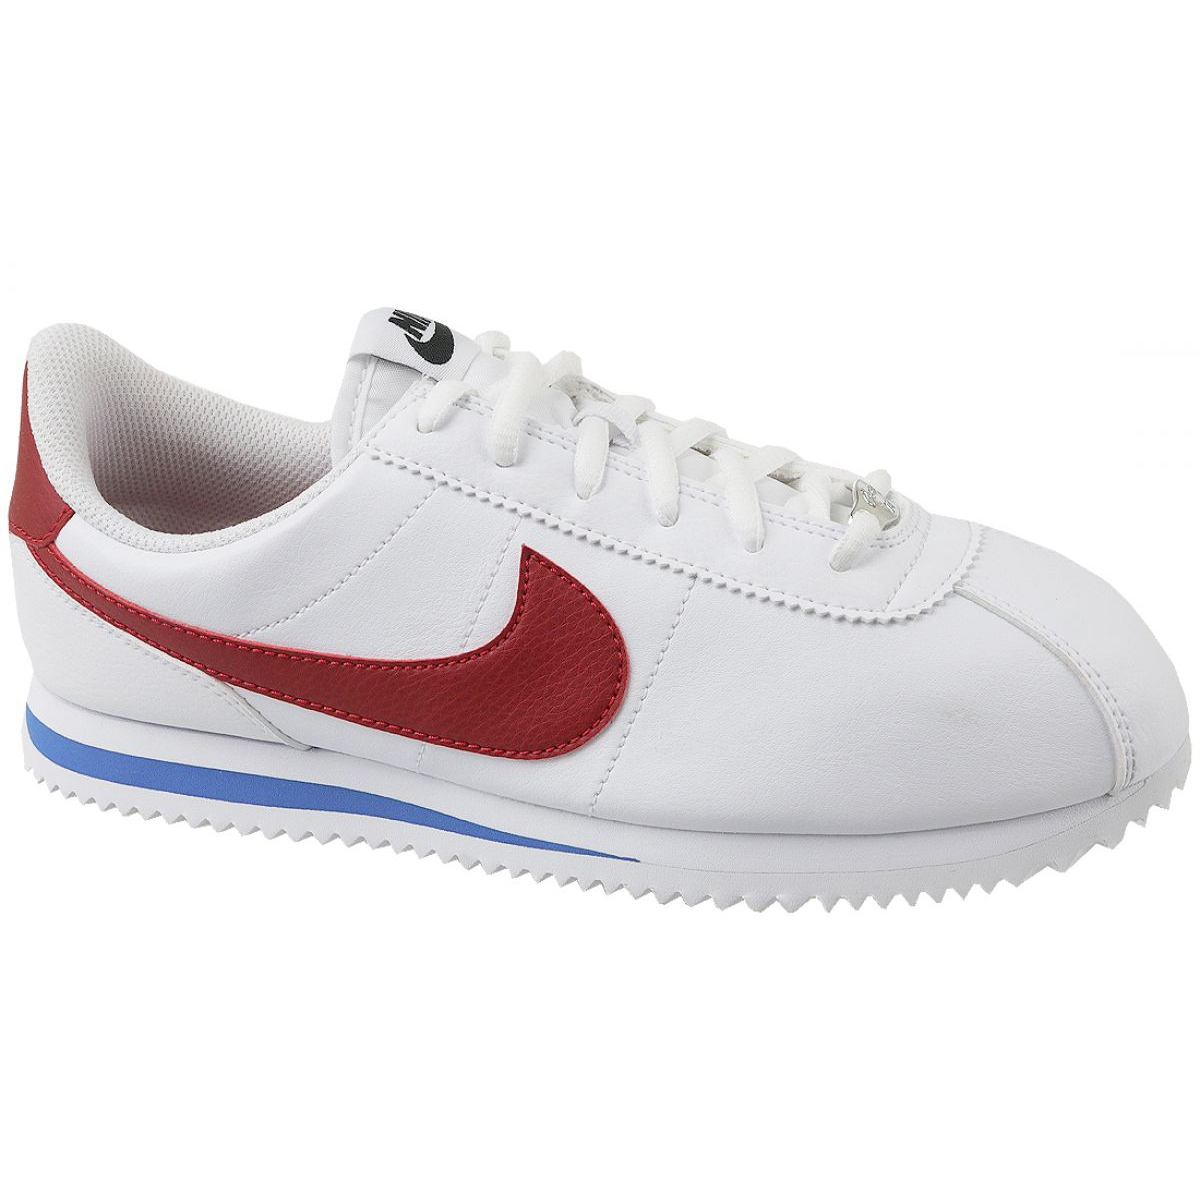 Alerta Ministerio blanco  Nike Cortez Basic Sl Gs Jr 904764-103 shoes white - ButyModne.pl